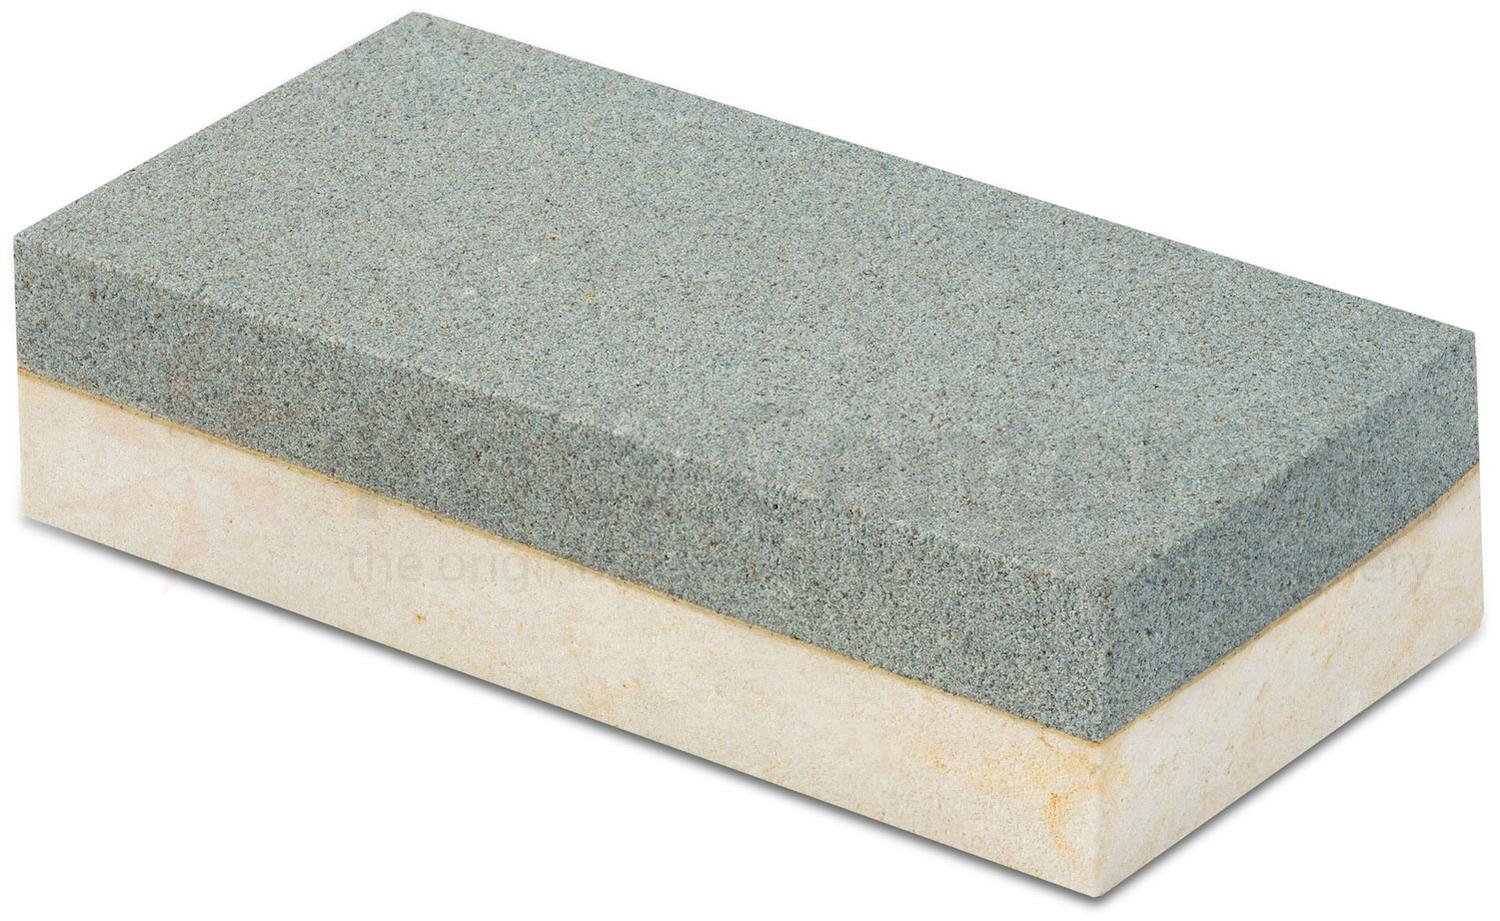 Hall Sharpening Stones 30068 Soft Dunston Black Arkansas 6